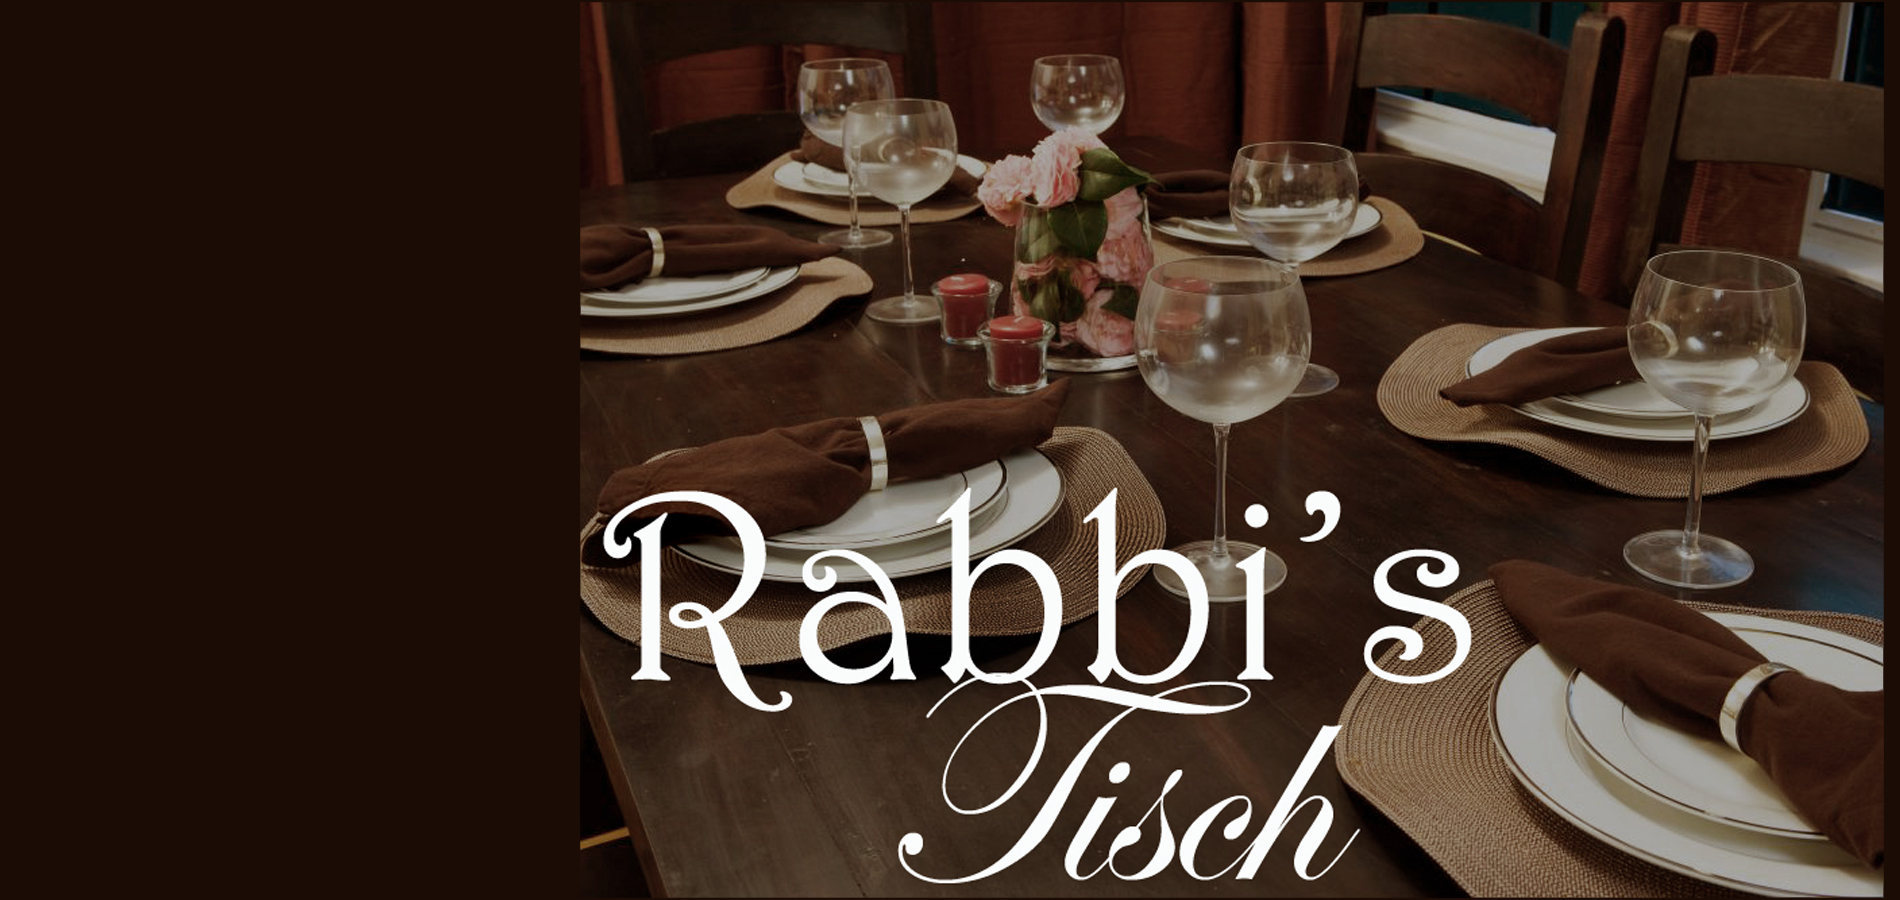 "<a href=""/rabbis_tisch""